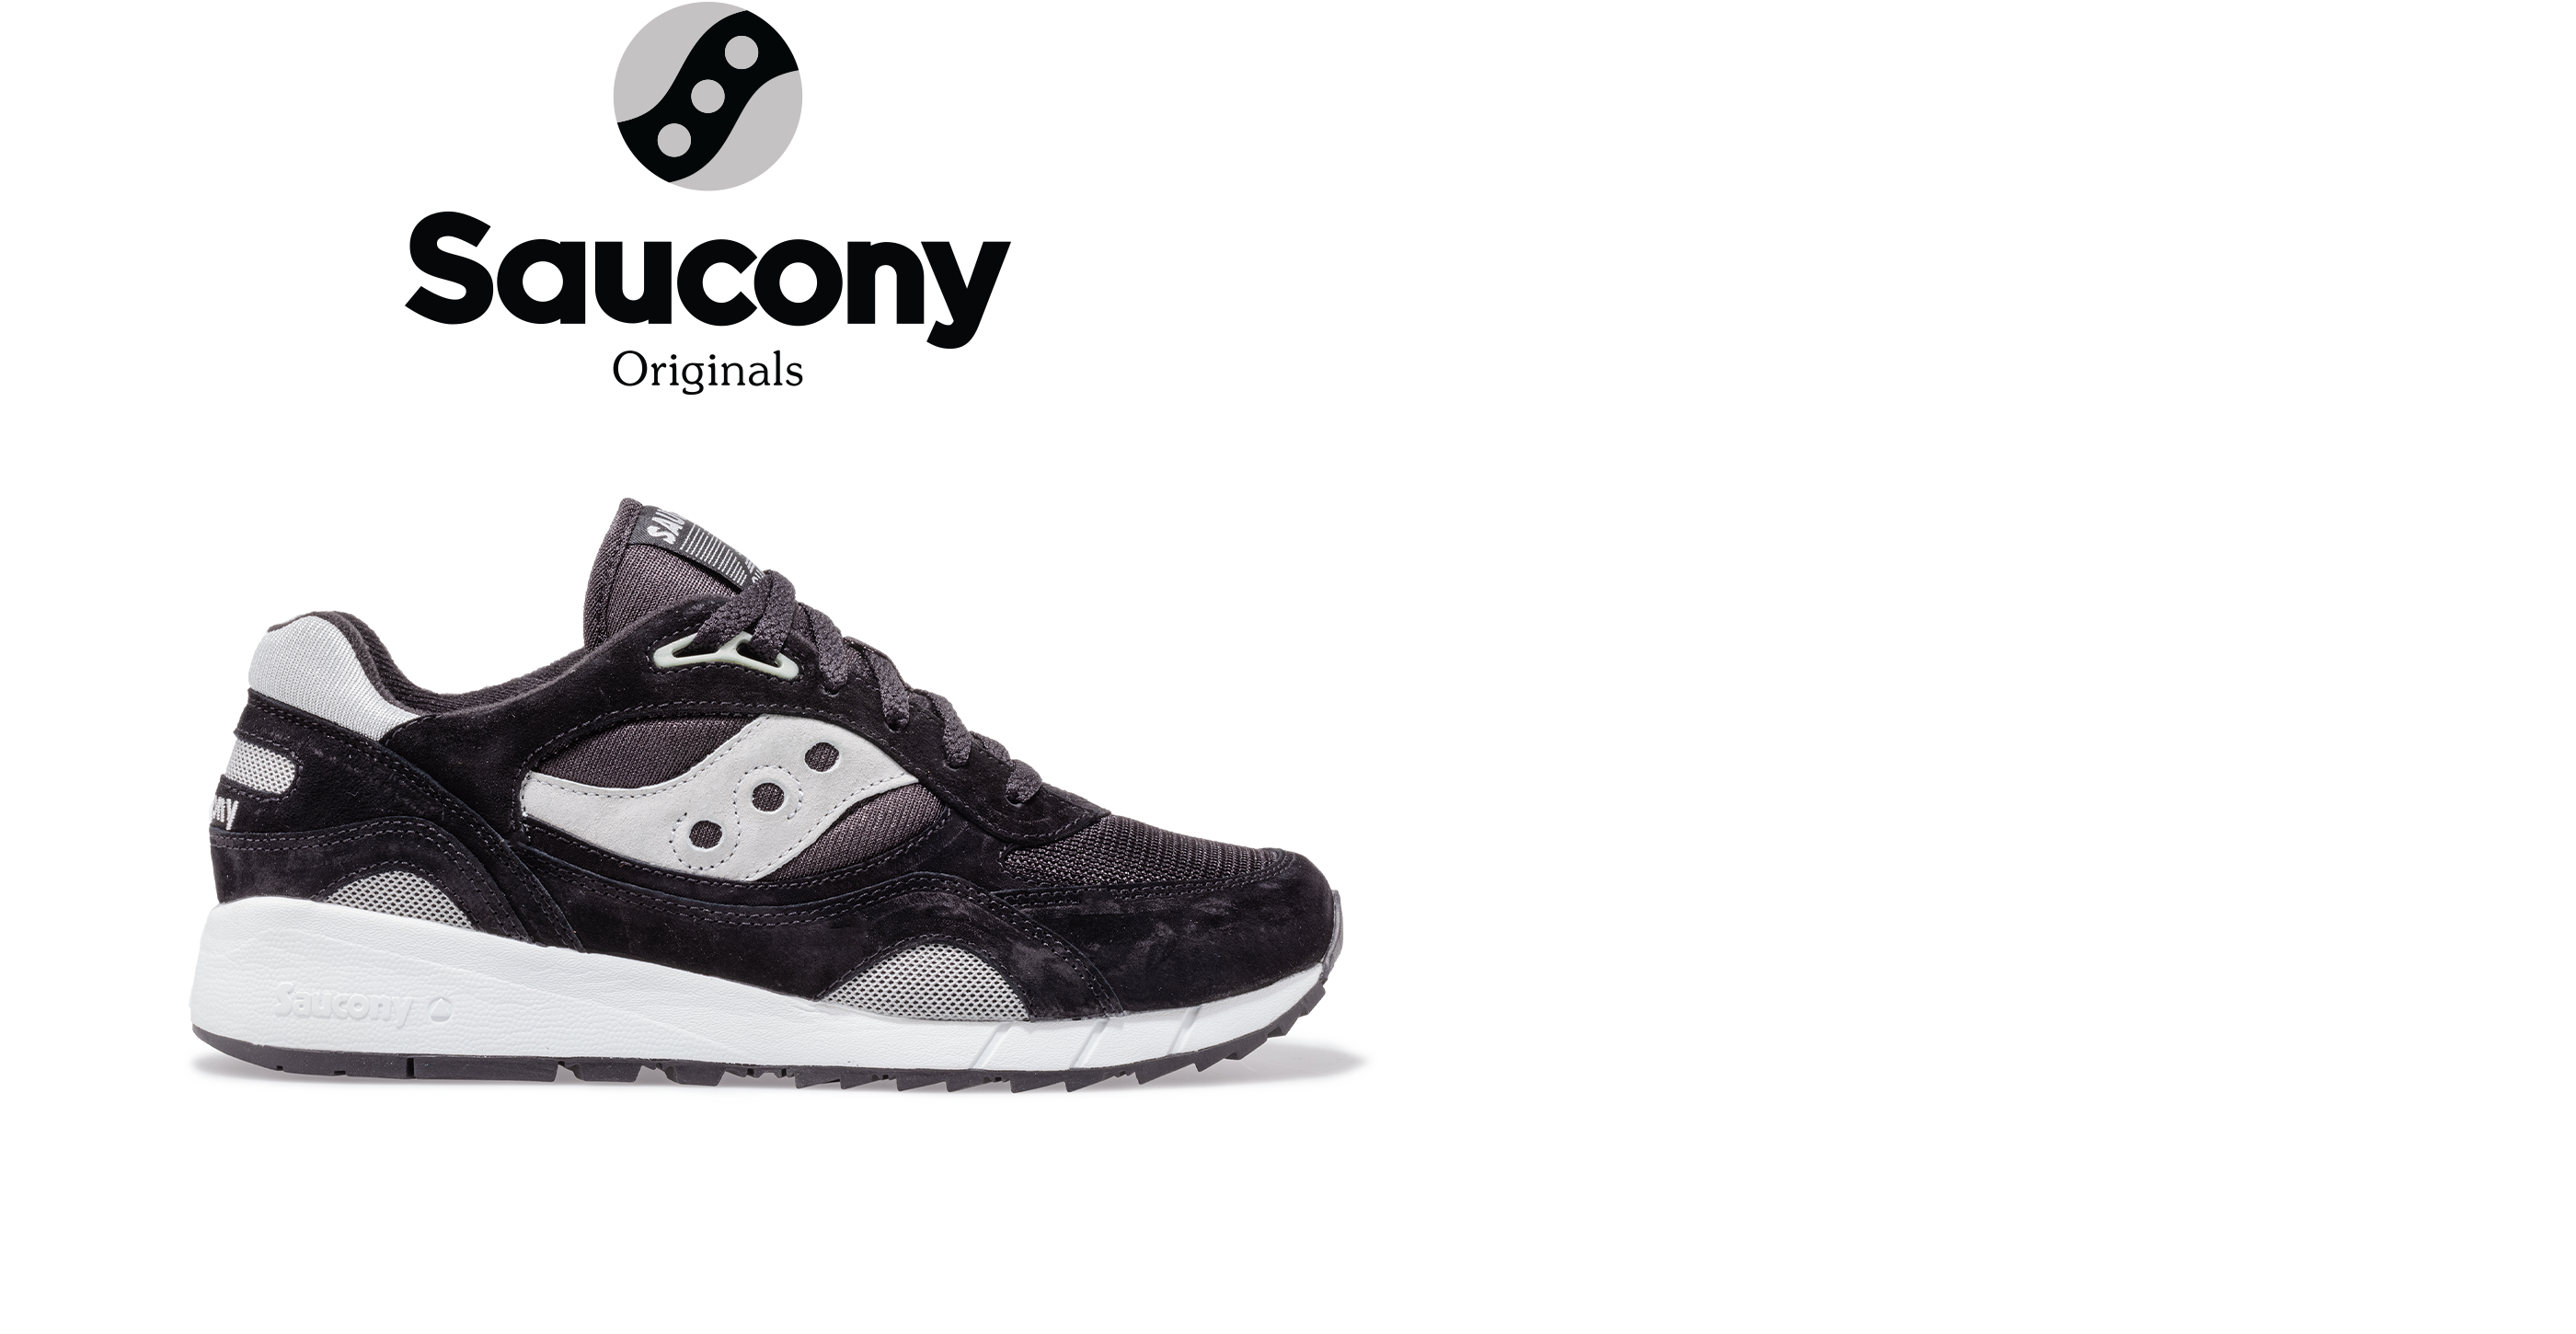 Saucony Shadow 6000 in black with gray accents.